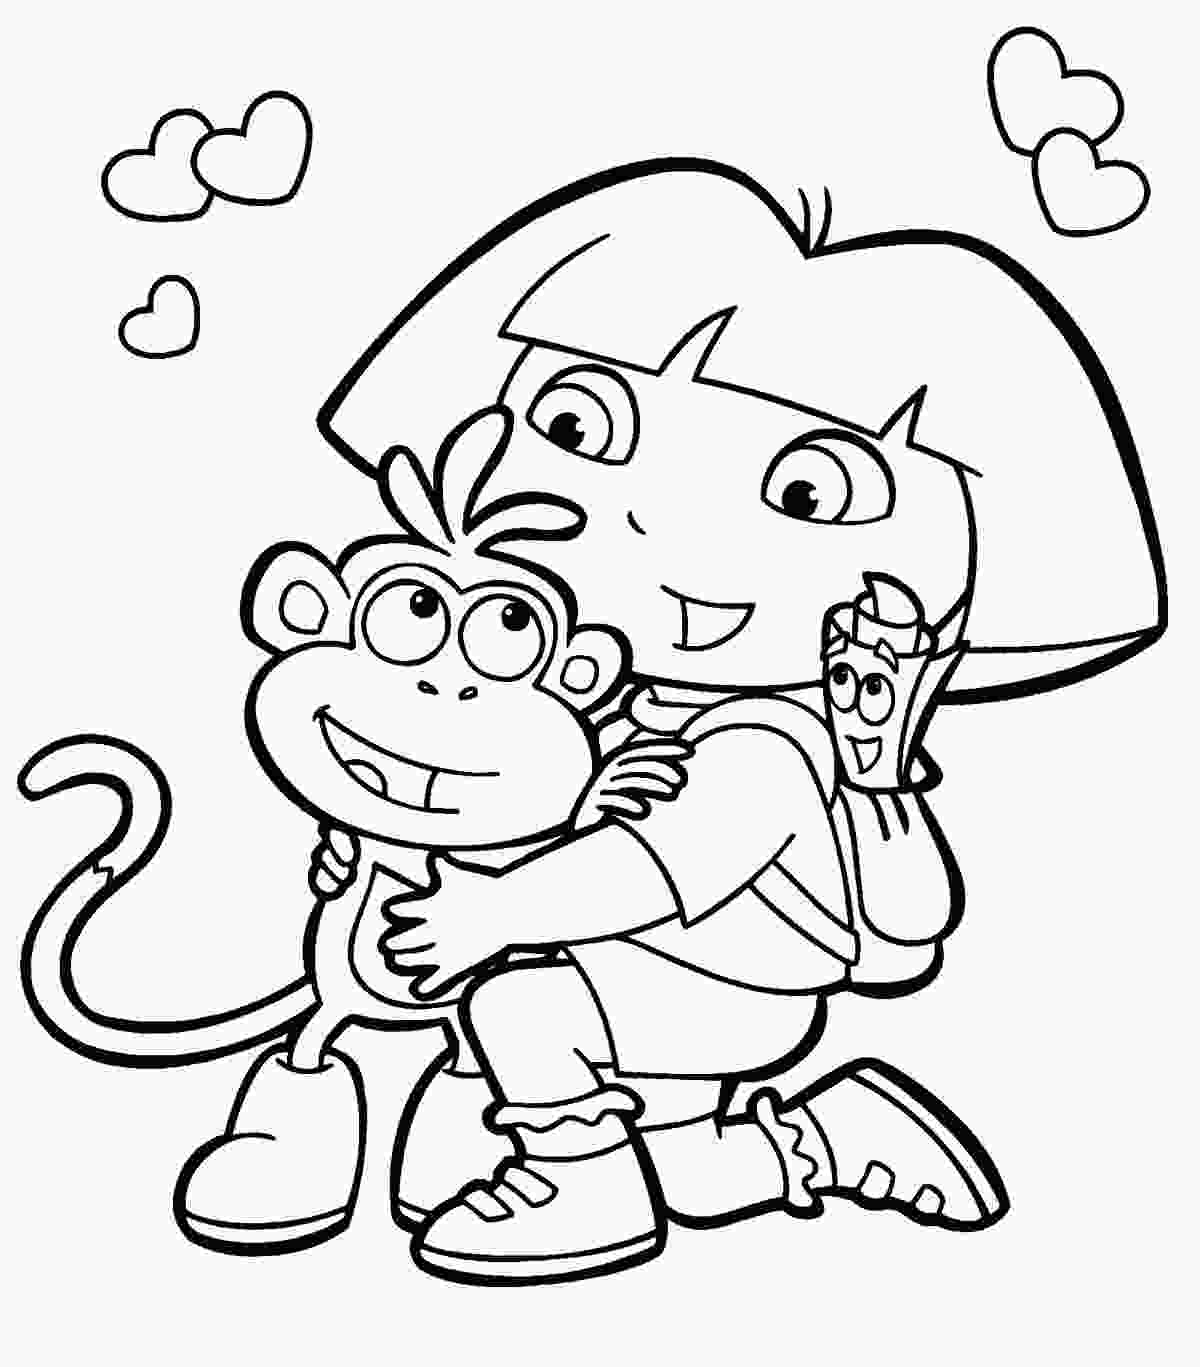 coloring pages dora coloring book pages free nickjrs dora the explorer